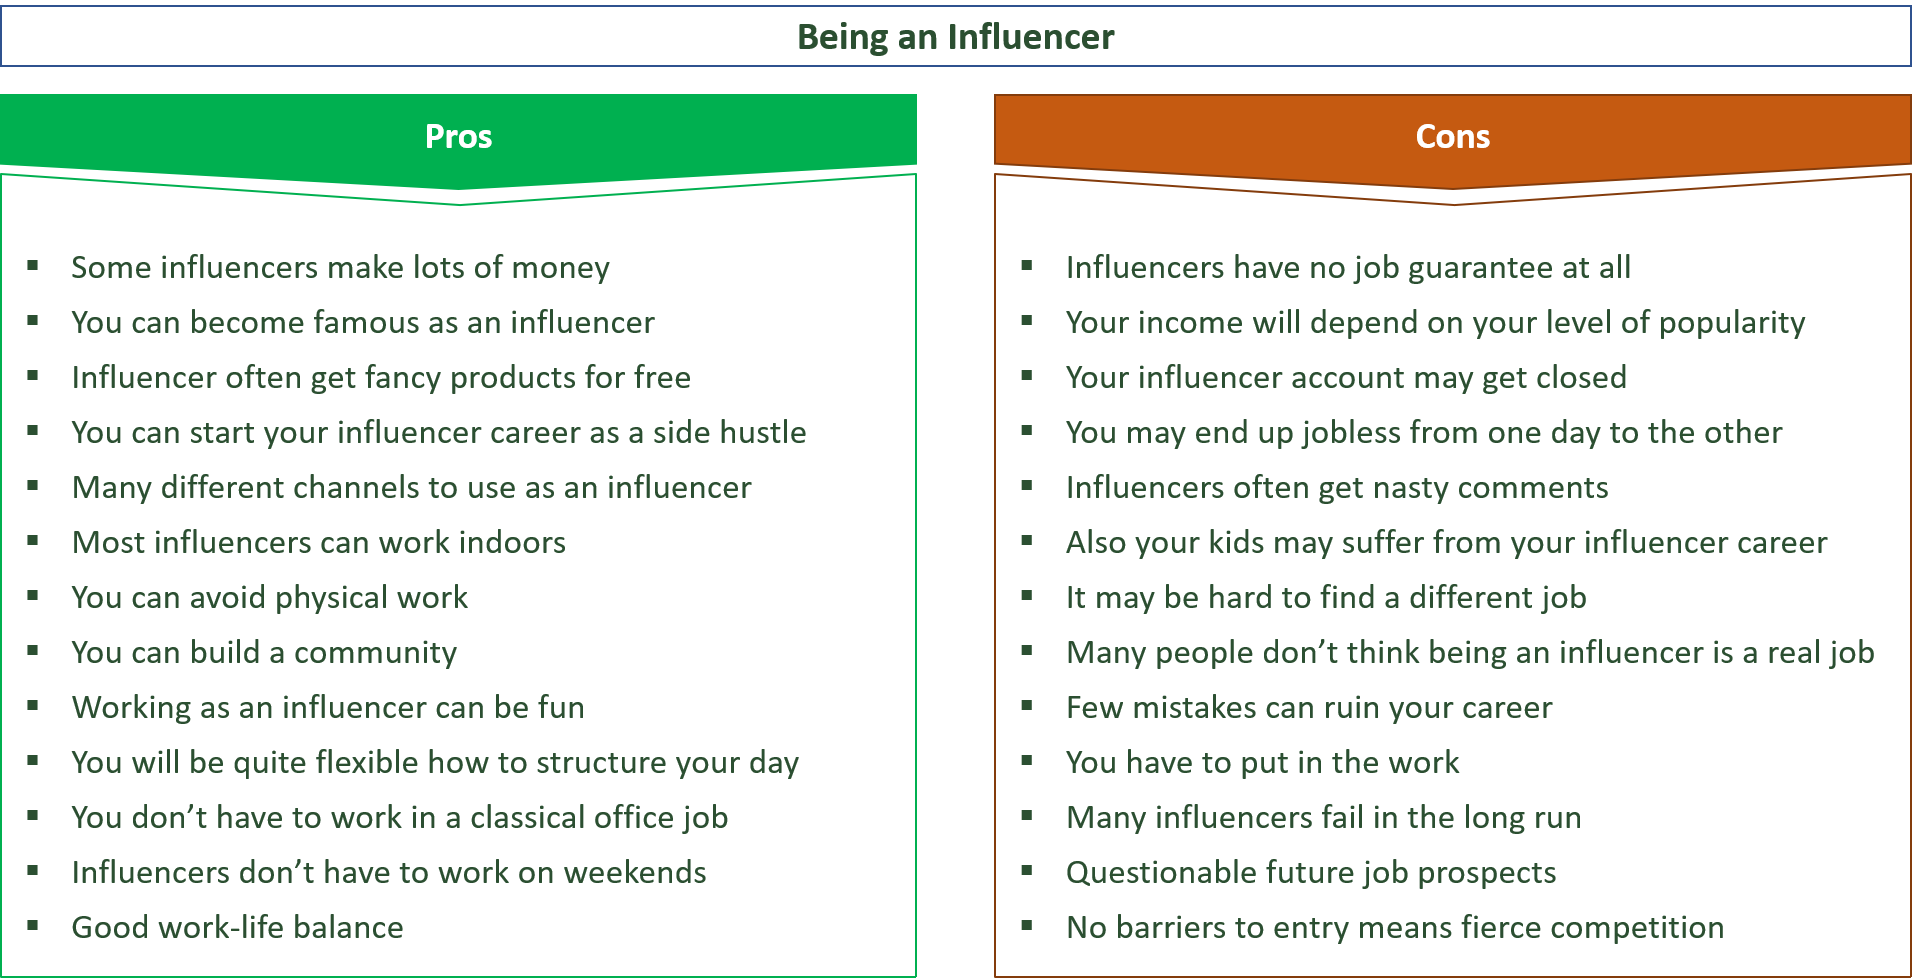 advantages and disadvantages of being an influencer